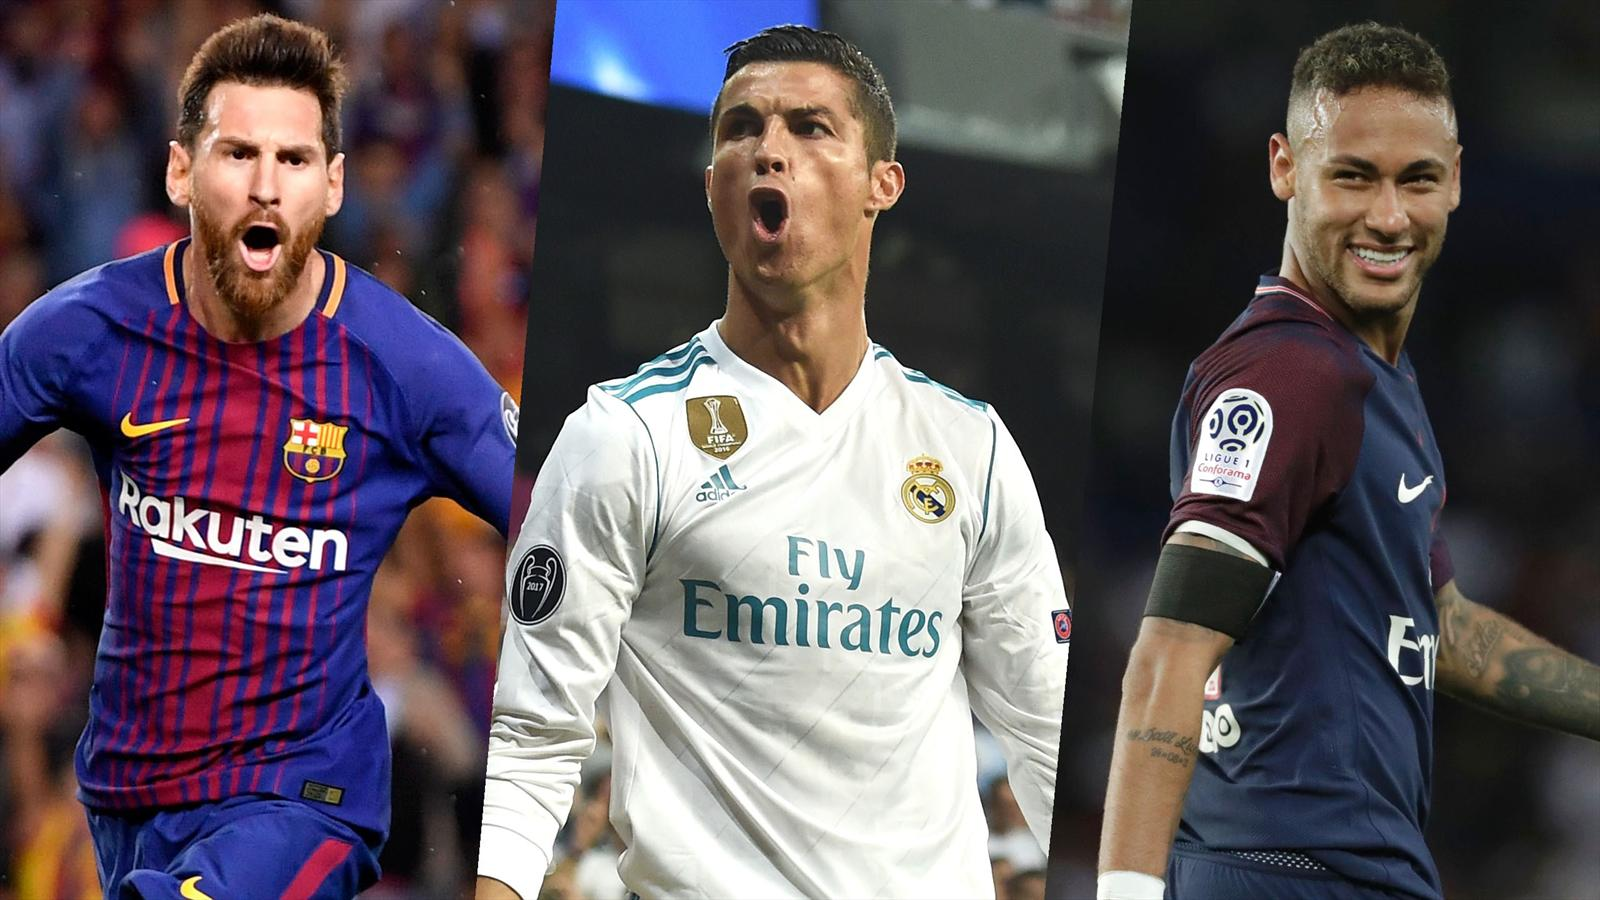 Champions League last-16 draw: Real Madrid draw PSG, Chelsea get Barca, Spurs to face Juventus ...